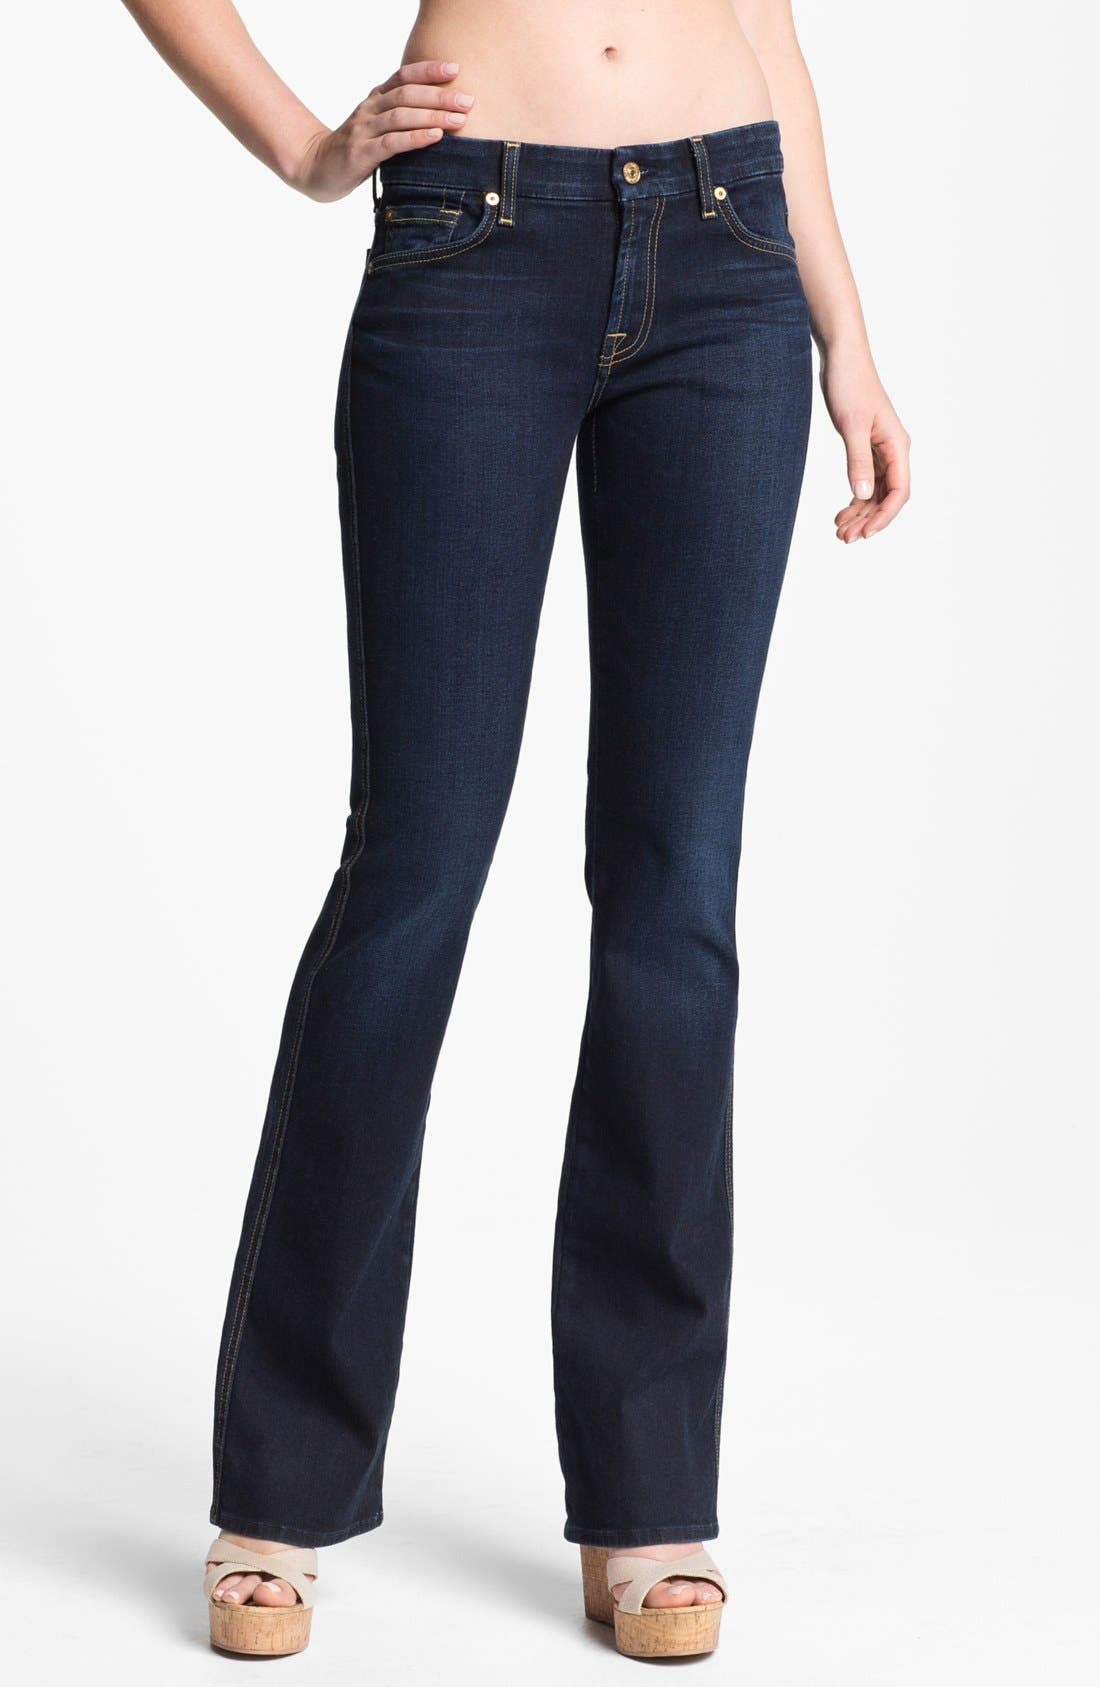 Main Image - 7 For all Mankind® 'Kimmie' Bootcut Jeans (Slim Illusion Dark Rich Blue)